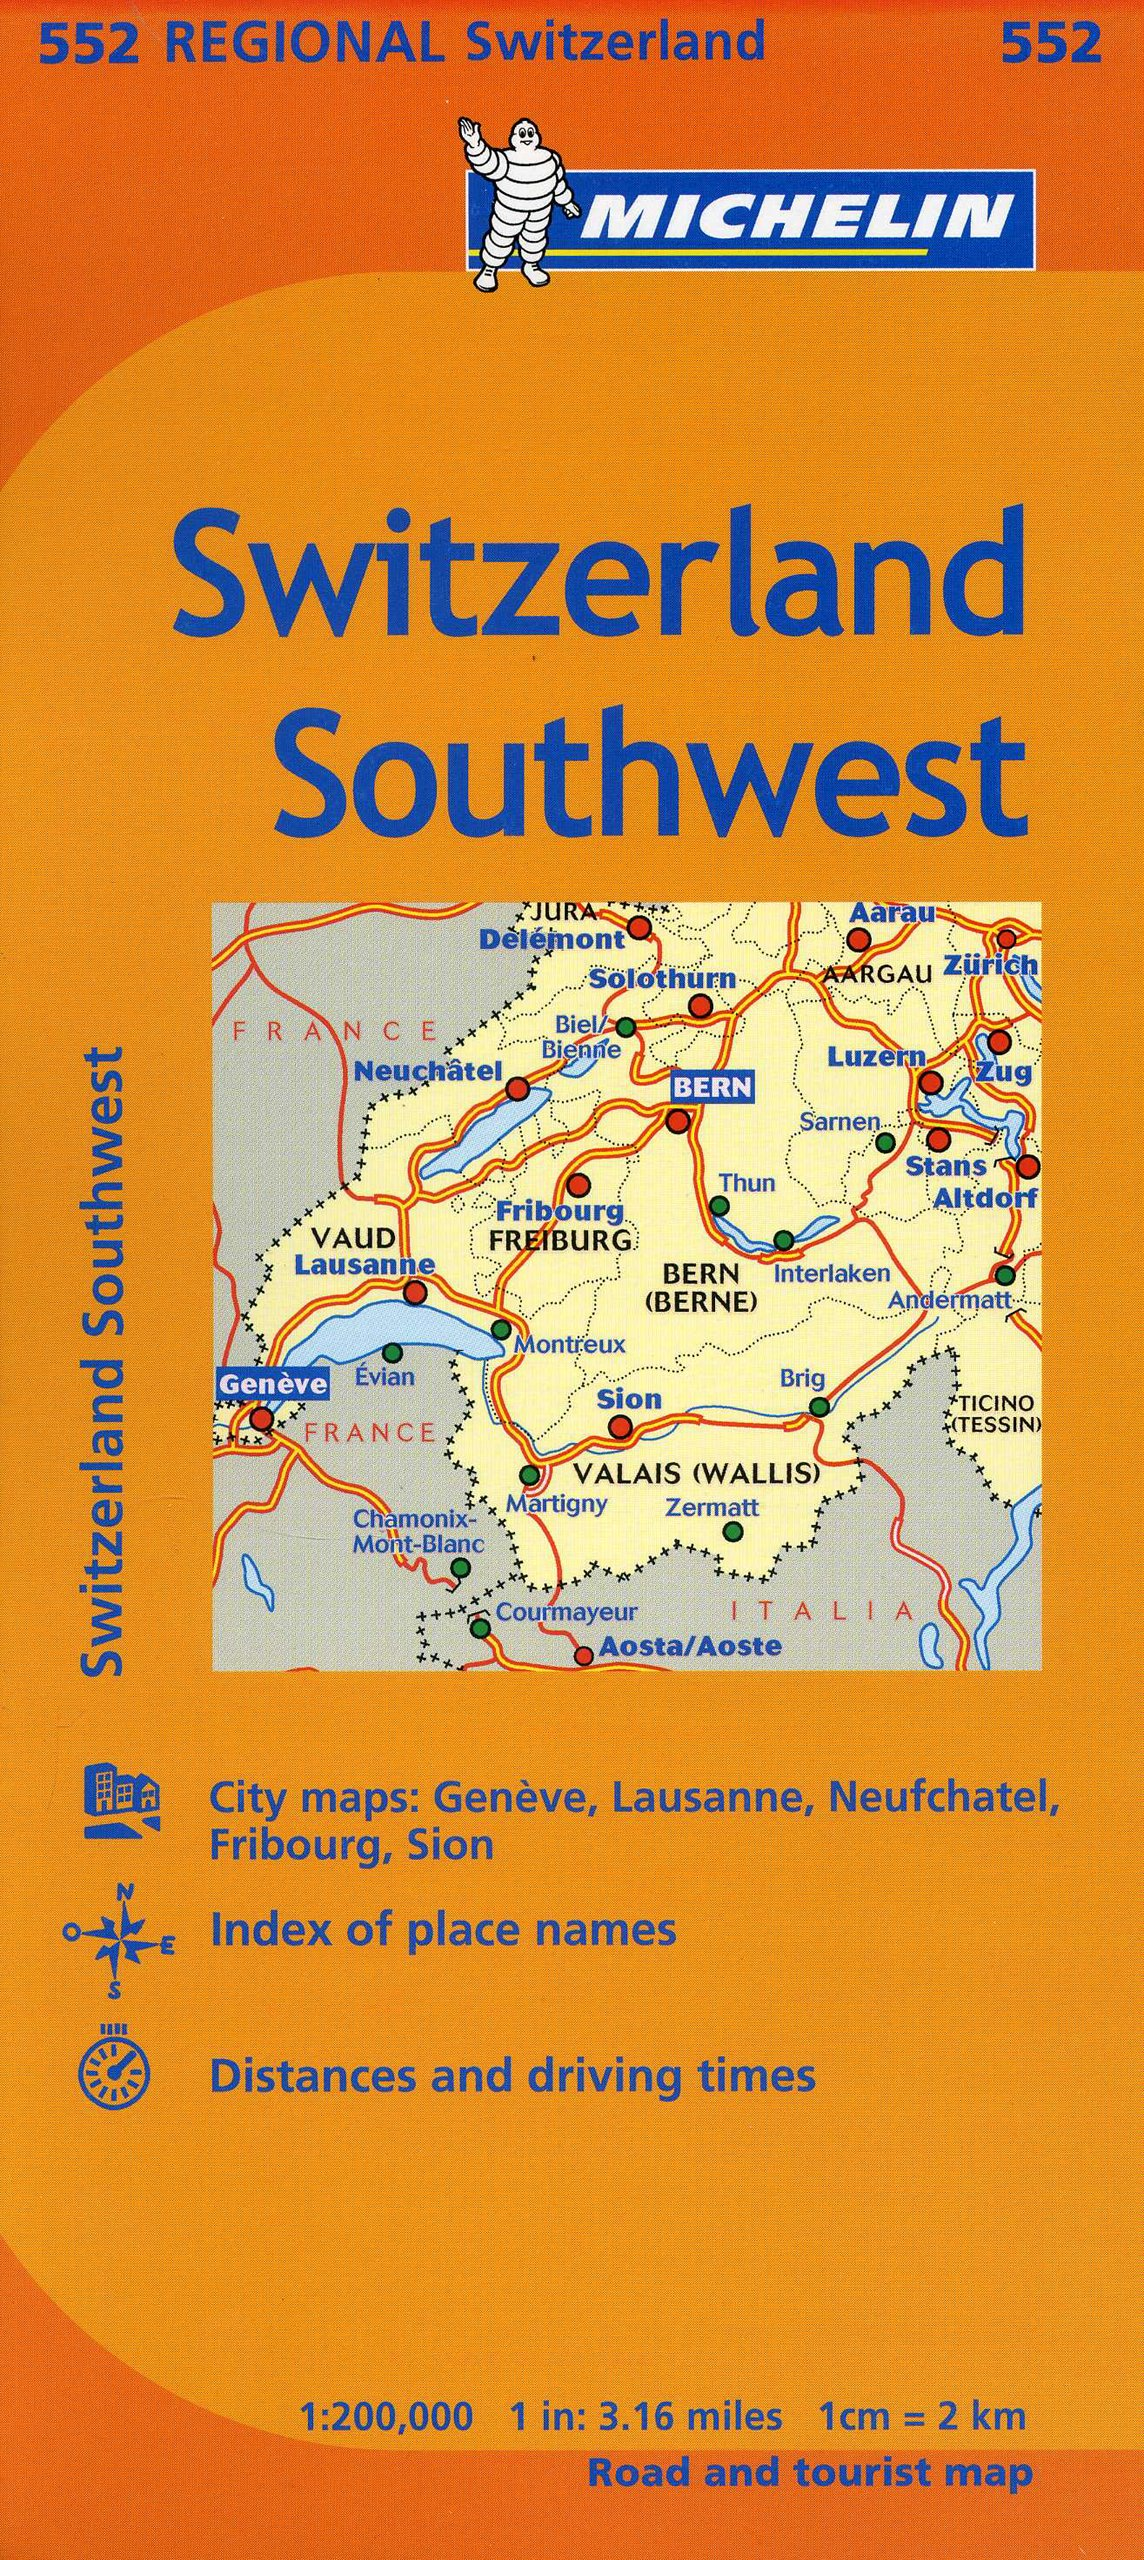 Michelin Switzerland Southwest Map 552 MapsRegional Michelin